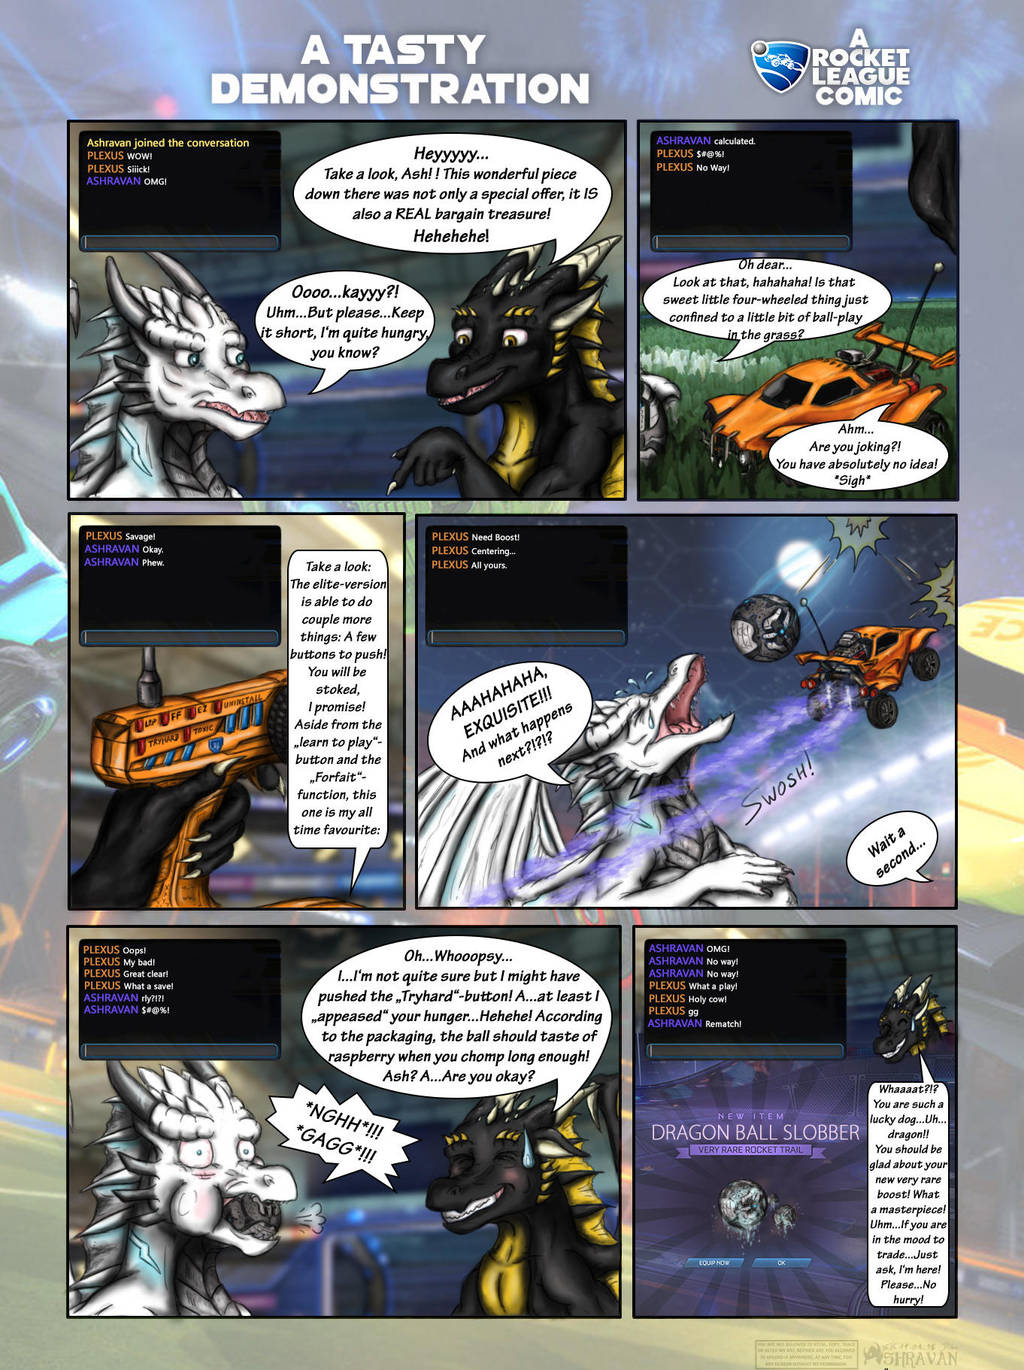 A Tasty Demonstration Eng Rocket League Comic By